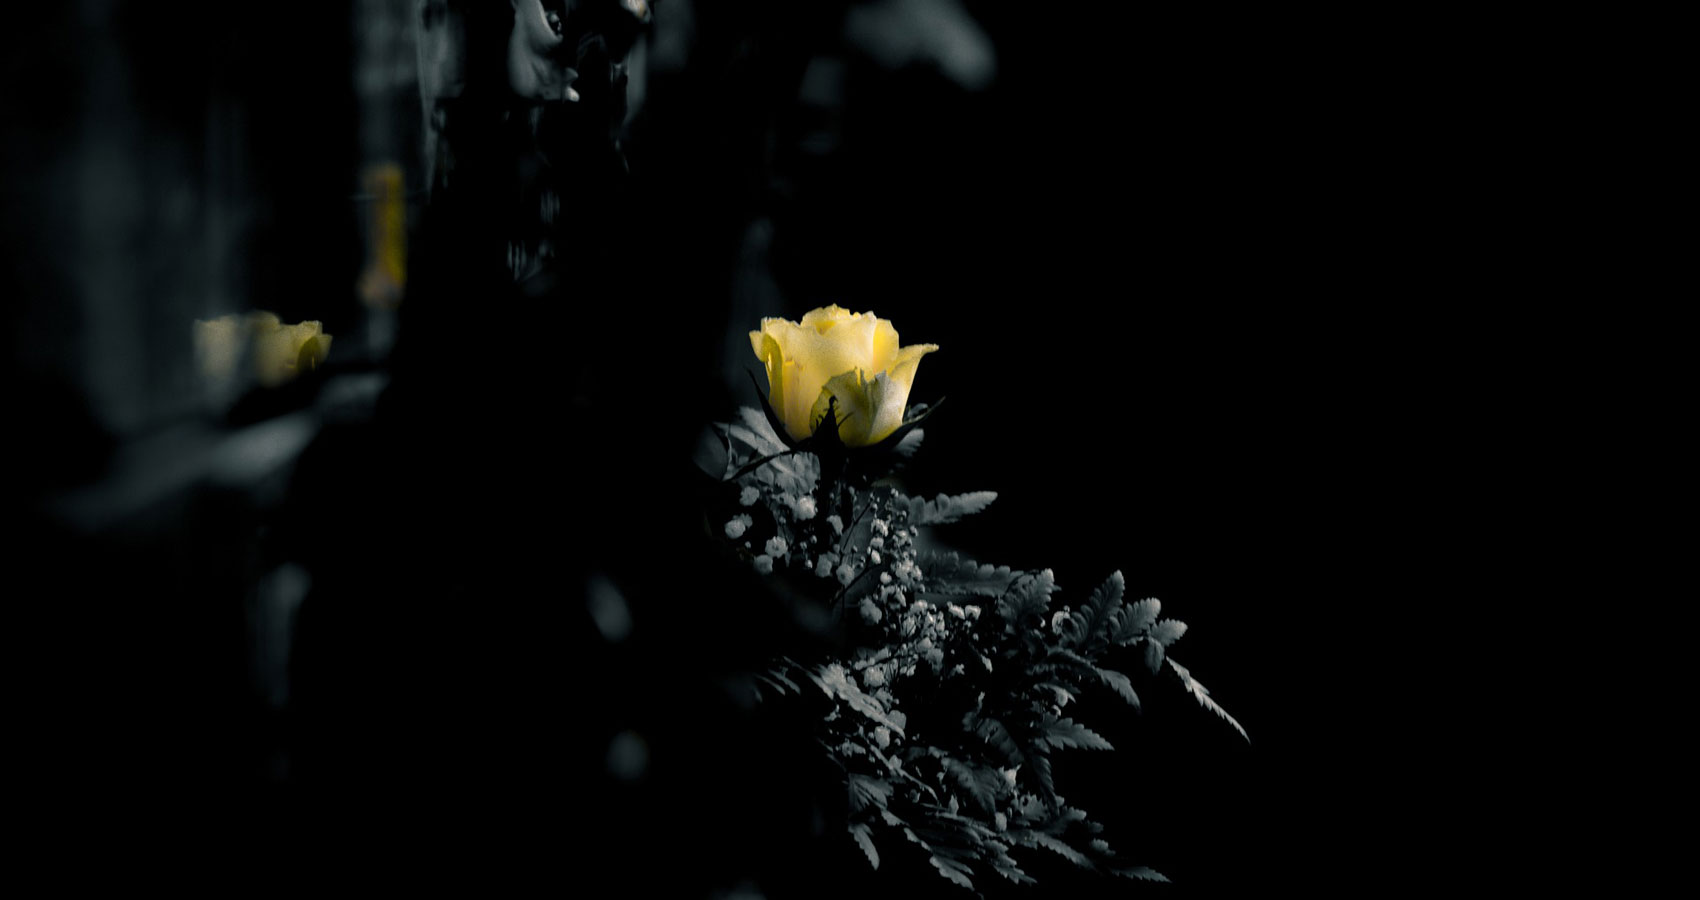 A Graveyard Full of Roses, written by Neeraj Kumar at Spillwords.com